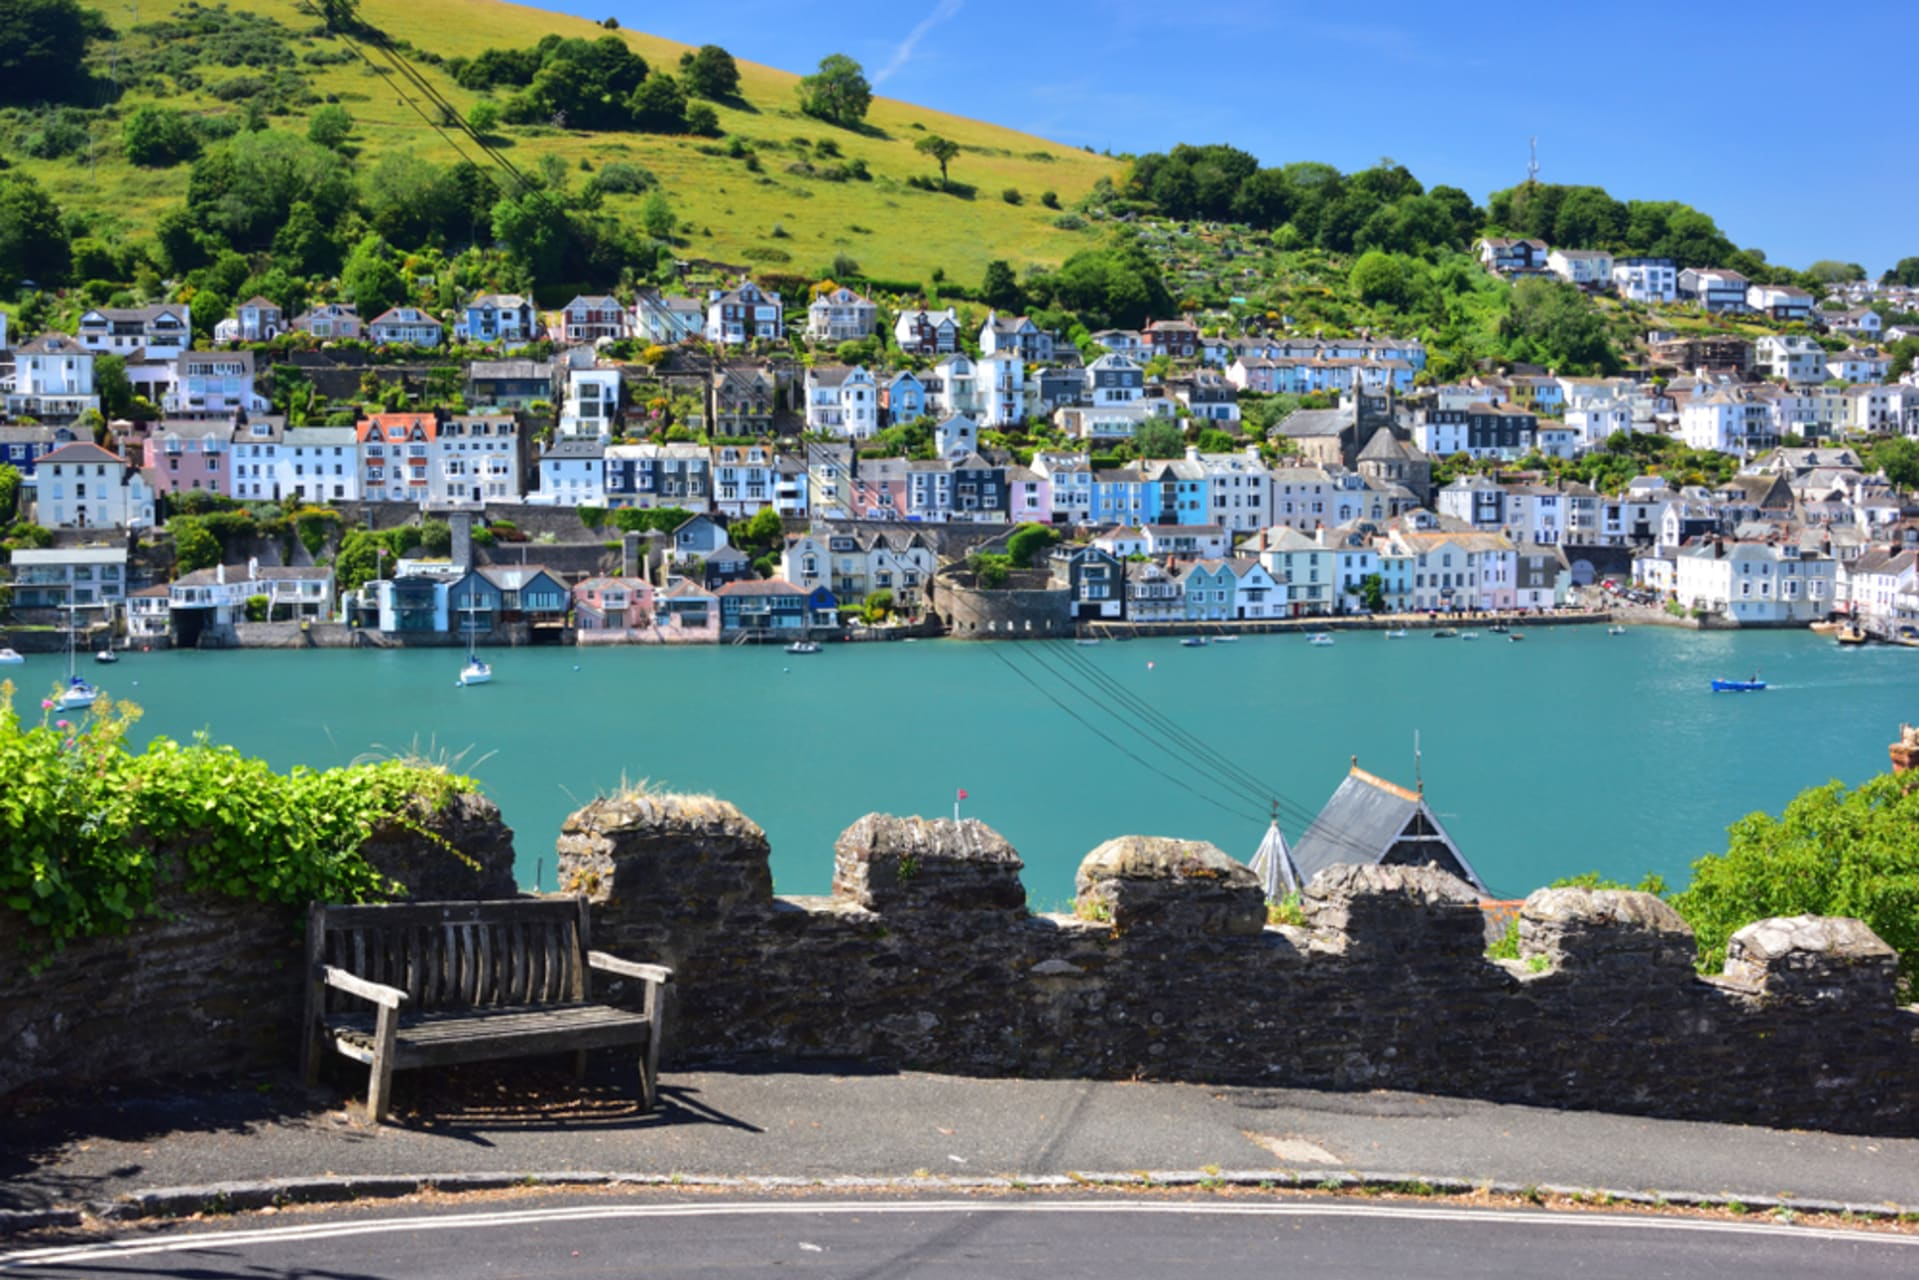 Devon - Dartmouth: maritime town with a Mayflower connection